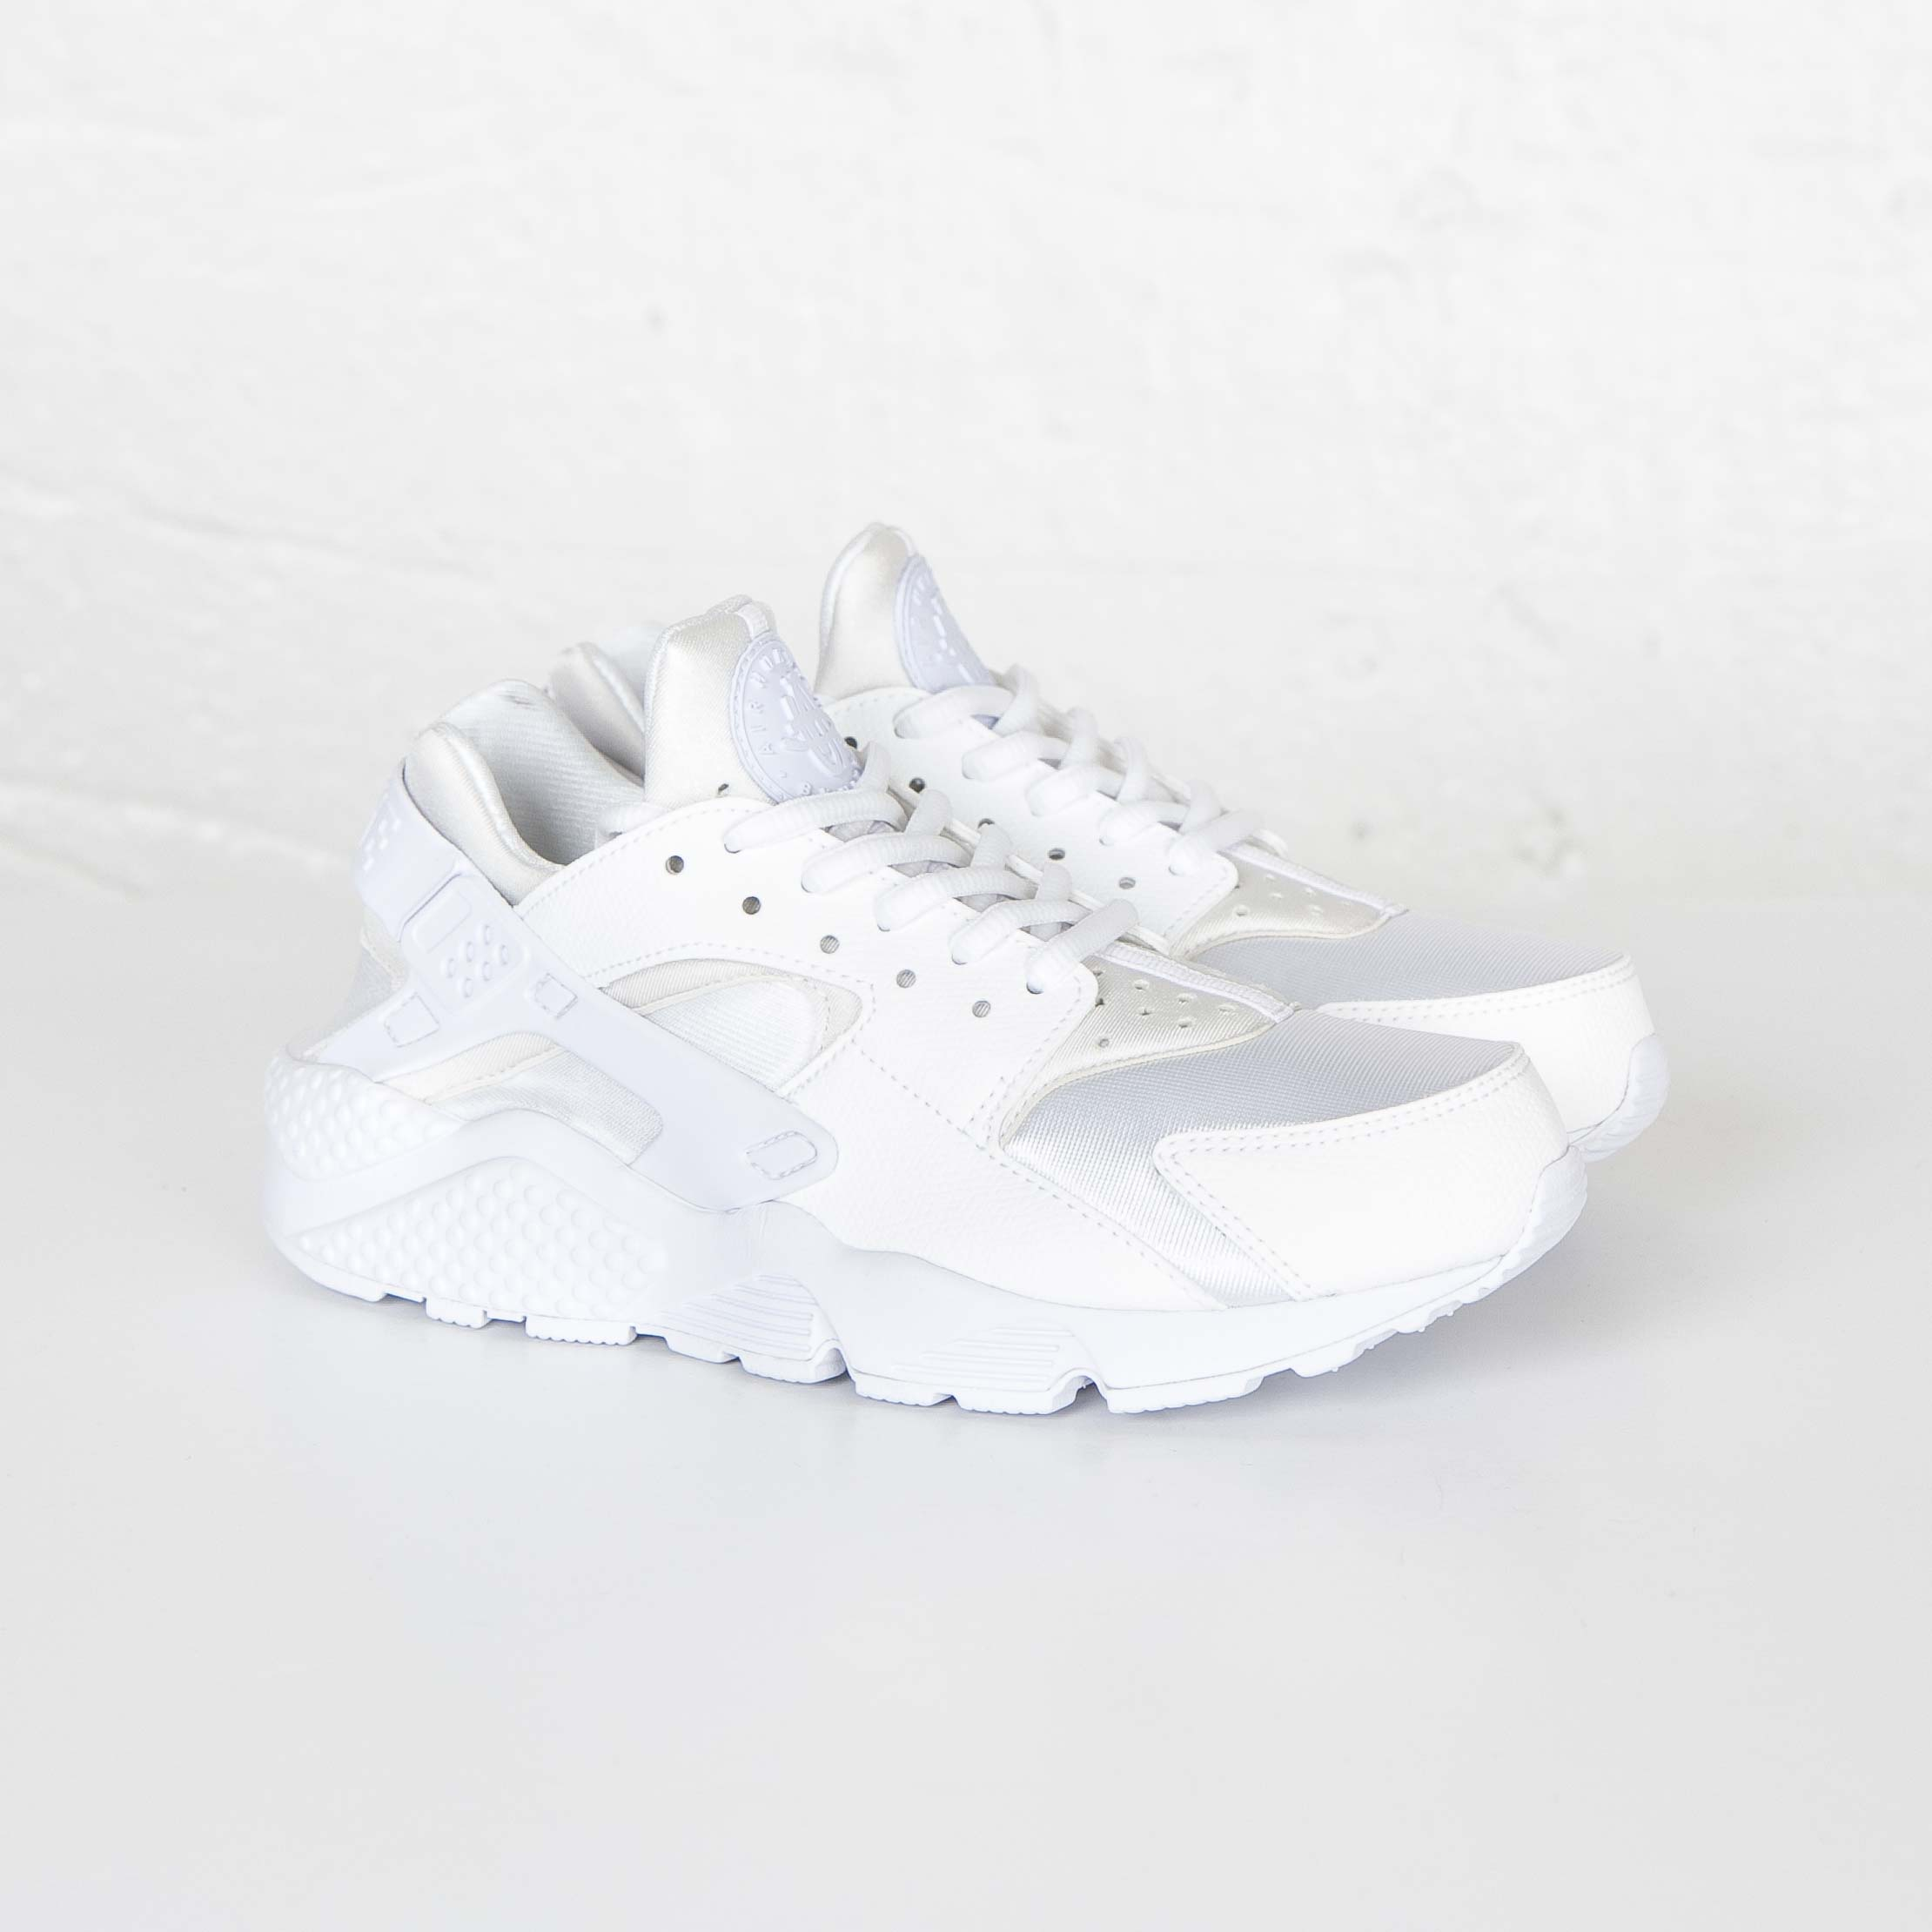 Nike Wmns Air Huarache Run 634835 108 Sneakersnstuff I